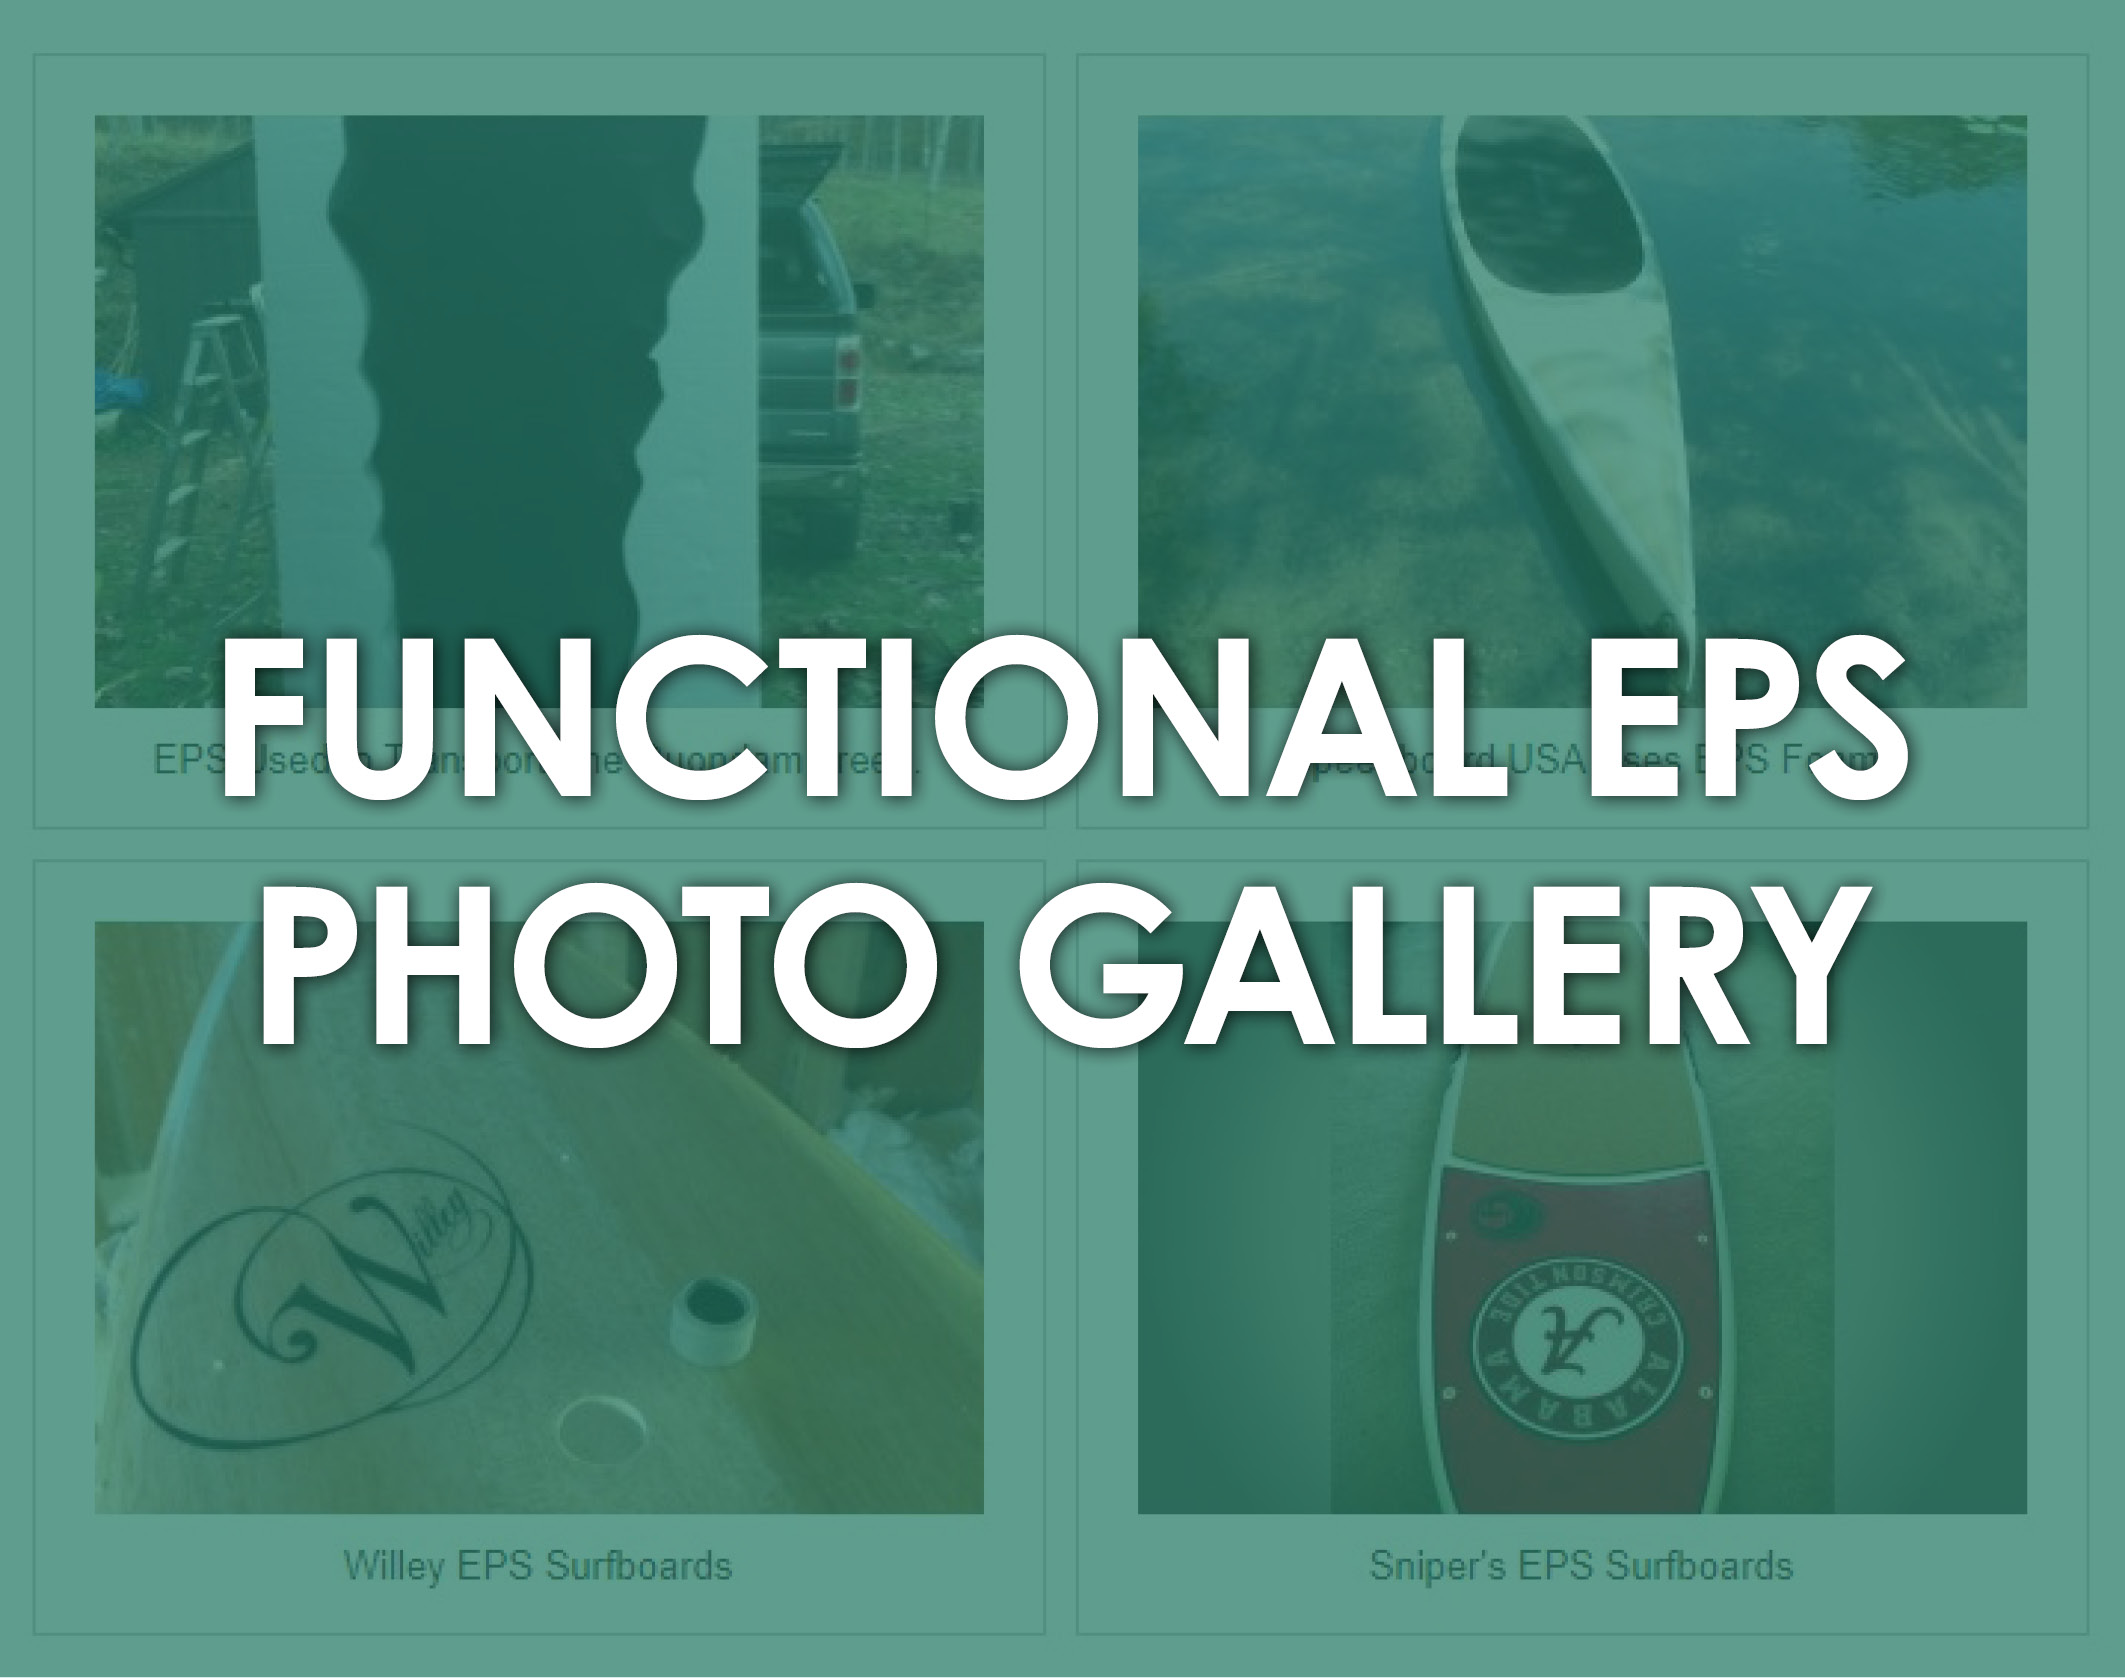 Functional EPS Photo Gallery by ICA